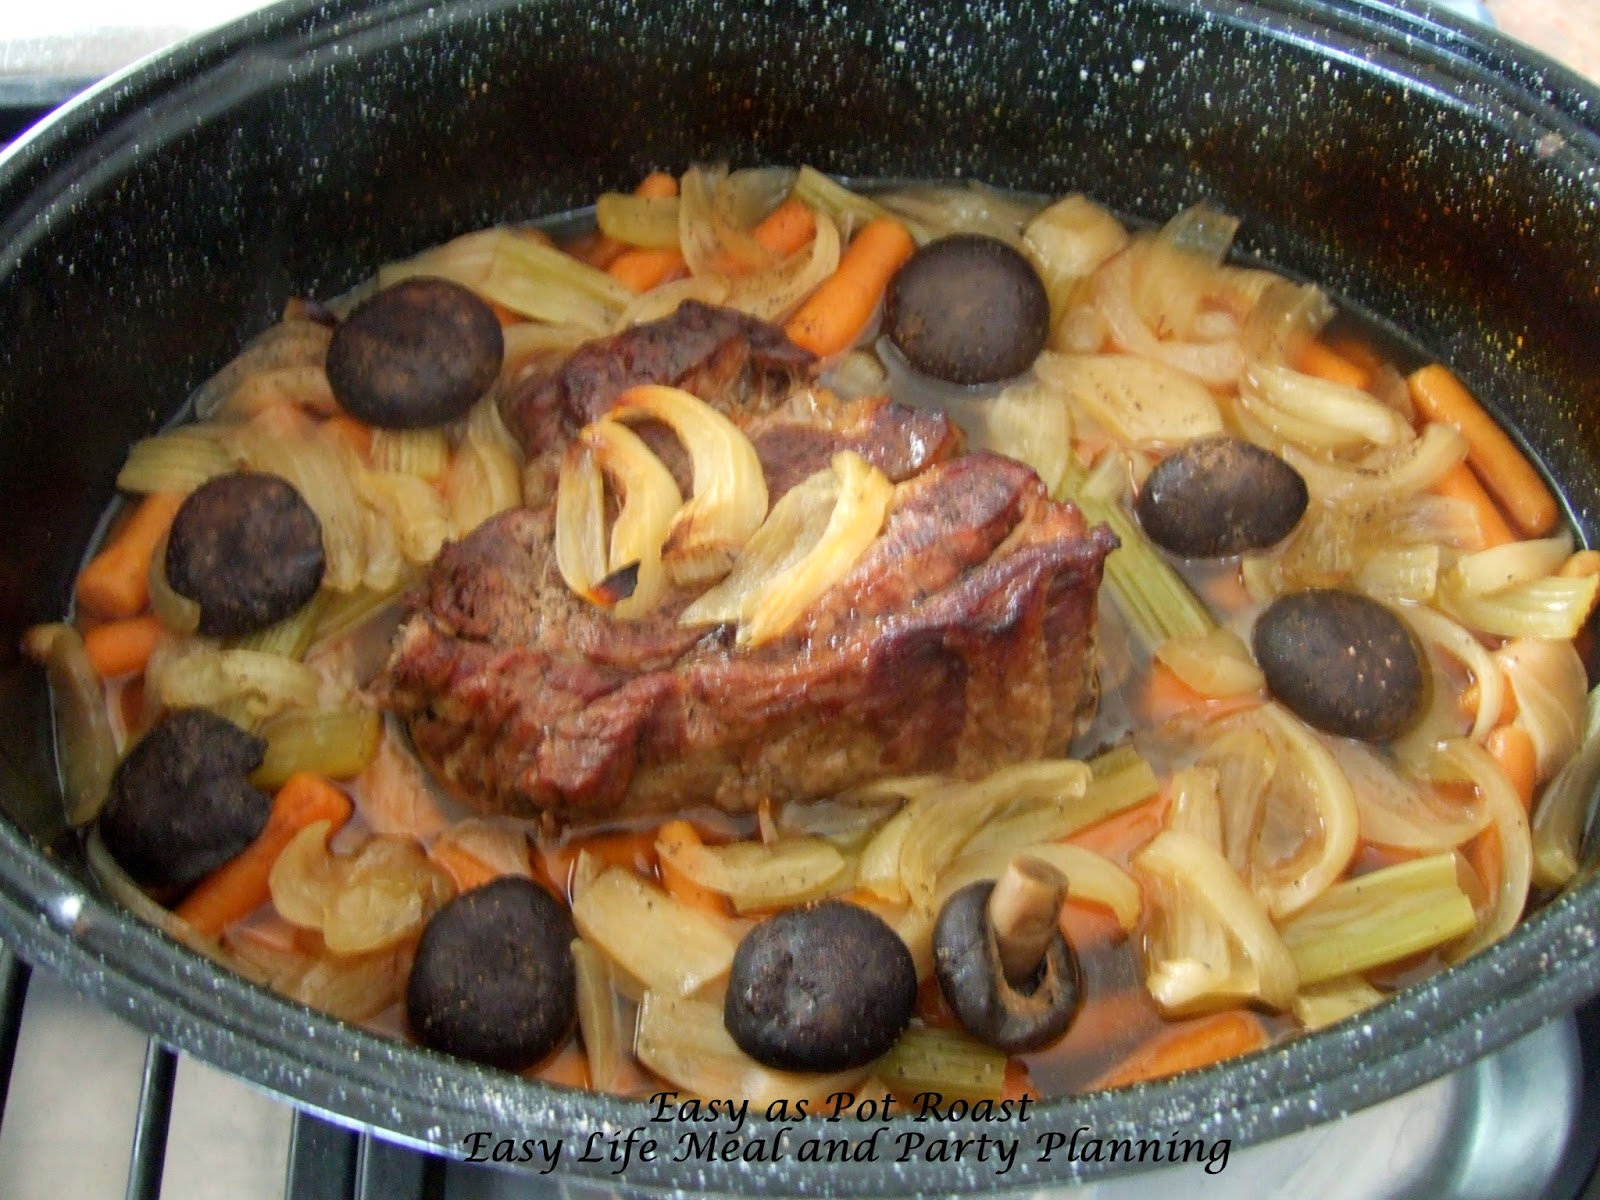 Easy as Pot Roast by Easy Life Meal and Party Planning